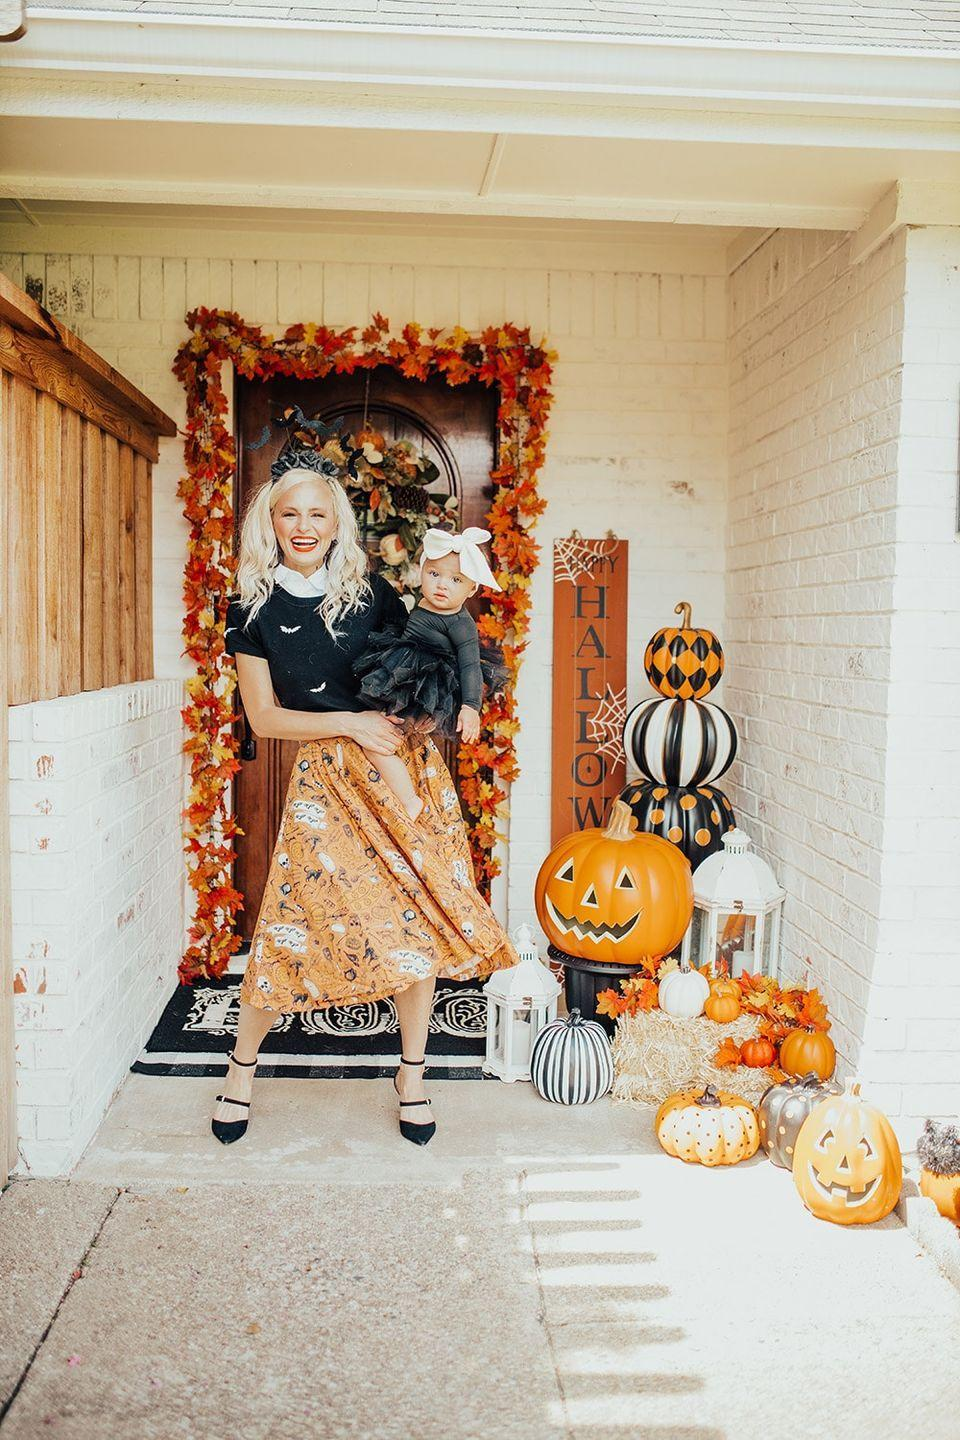 """<p>With a mix of sizes and prints, these cute pumpkins are giving us fun circus vibes. </p><p><strong>See more at <a href=""""https://vandifair.com/halloween-outdoor-decor/"""" rel=""""nofollow noopener"""" target=""""_blank"""" data-ylk=""""slk:Vandi Fair"""" class=""""link rapid-noclick-resp"""">Vandi Fair</a>. </strong></p><p><a class=""""link rapid-noclick-resp"""" href=""""https://go.redirectingat.com?id=74968X1596630&url=https%3A%2F%2Fwww.etsy.com%2Flisting%2F856349997%2Fhappy-halloween-porch-board&sref=https%3A%2F%2Fwww.thepioneerwoman.com%2Fhome-lifestyle%2Fdecorating-ideas%2Fg36877187%2Foutdoor-pumpkin-decorations%2F"""" rel=""""nofollow noopener"""" target=""""_blank"""" data-ylk=""""slk:SHOP HALLOWEEN SIGNS"""">SHOP HALLOWEEN SIGNS</a></p>"""